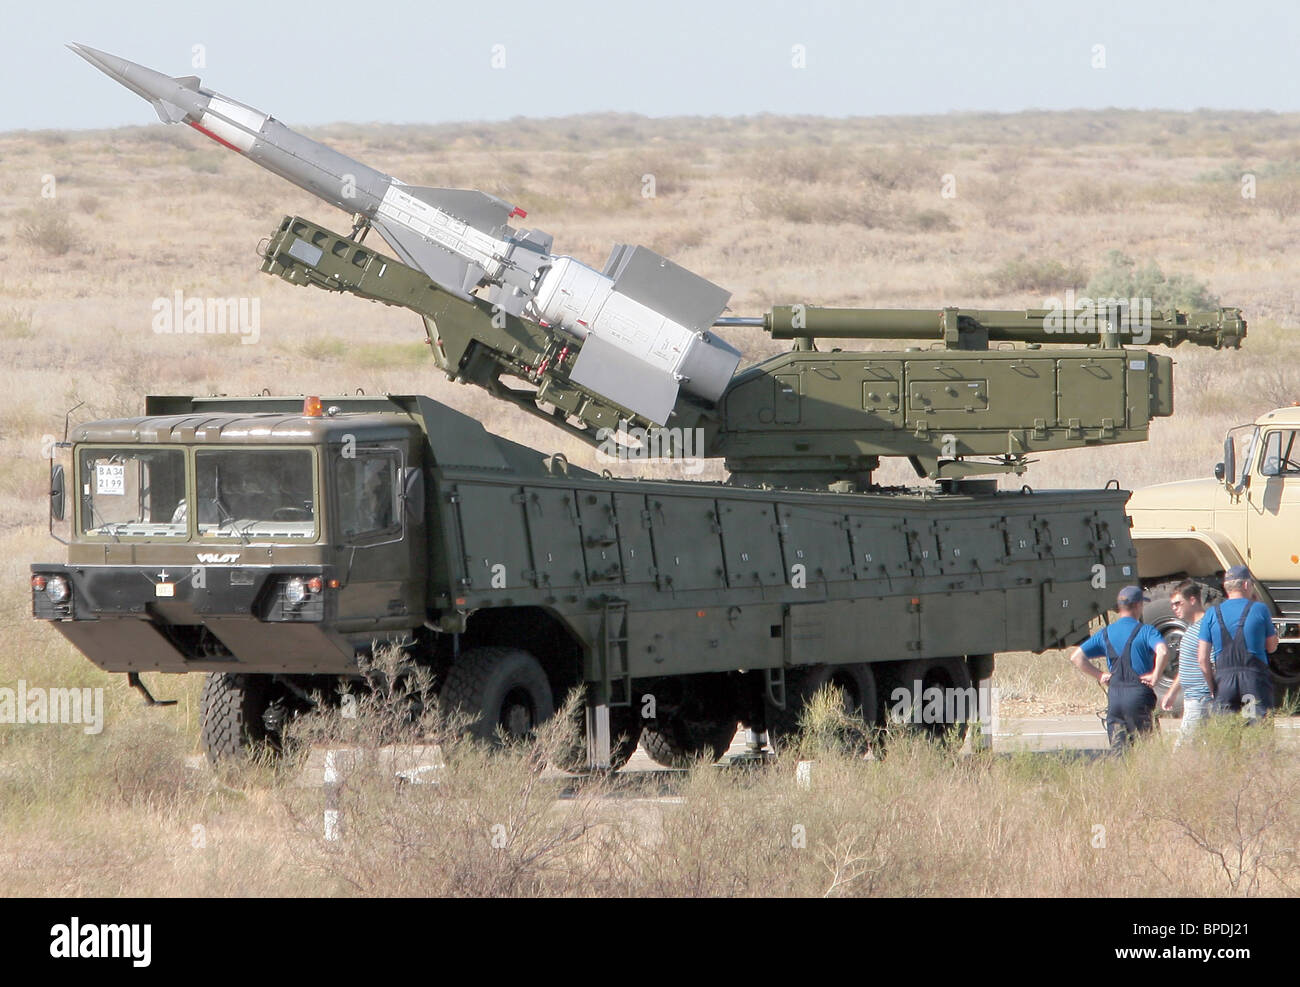 Air defence exercise of CIS states, 'Combat Commonwealth 2007', under way near Astrakhan - Stock Image